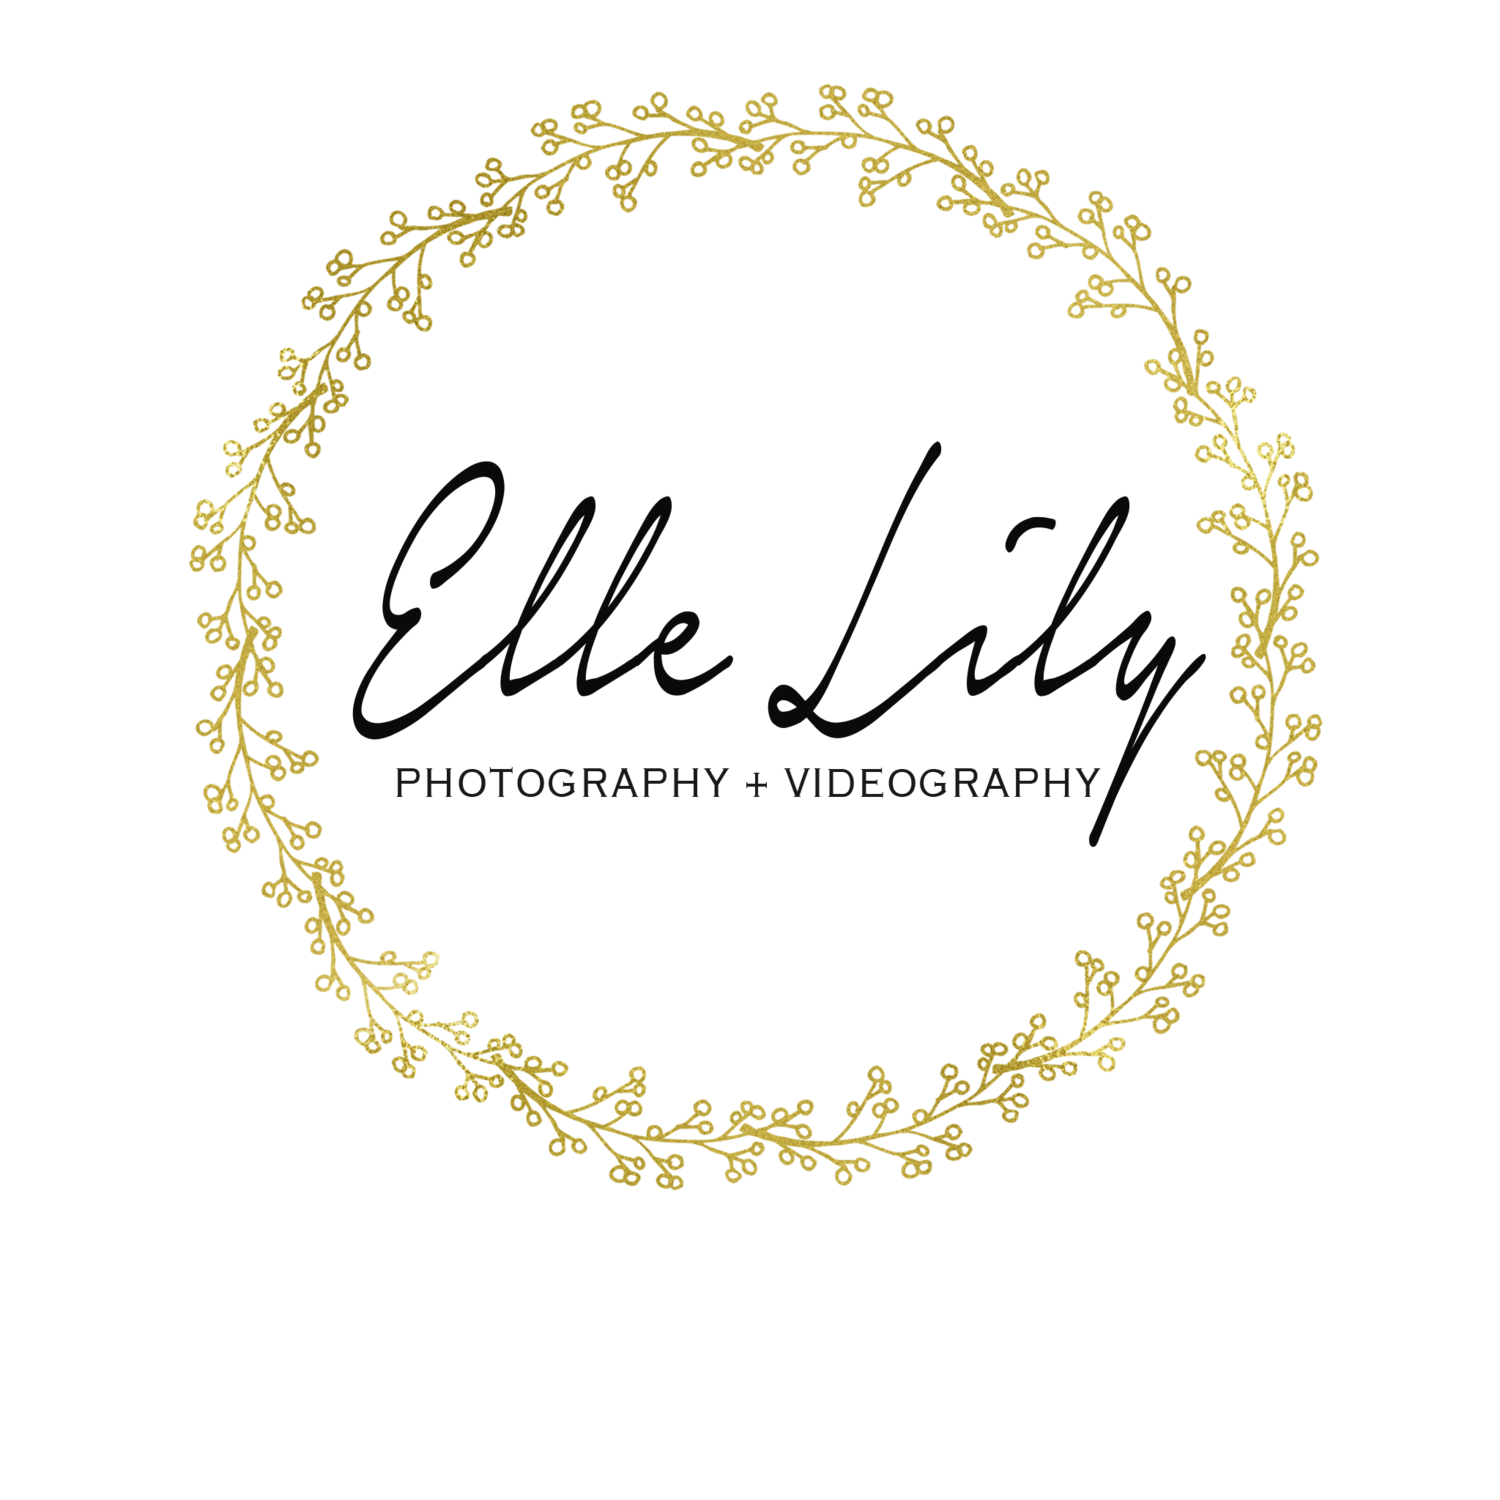 Elle Lily Photography and Videography